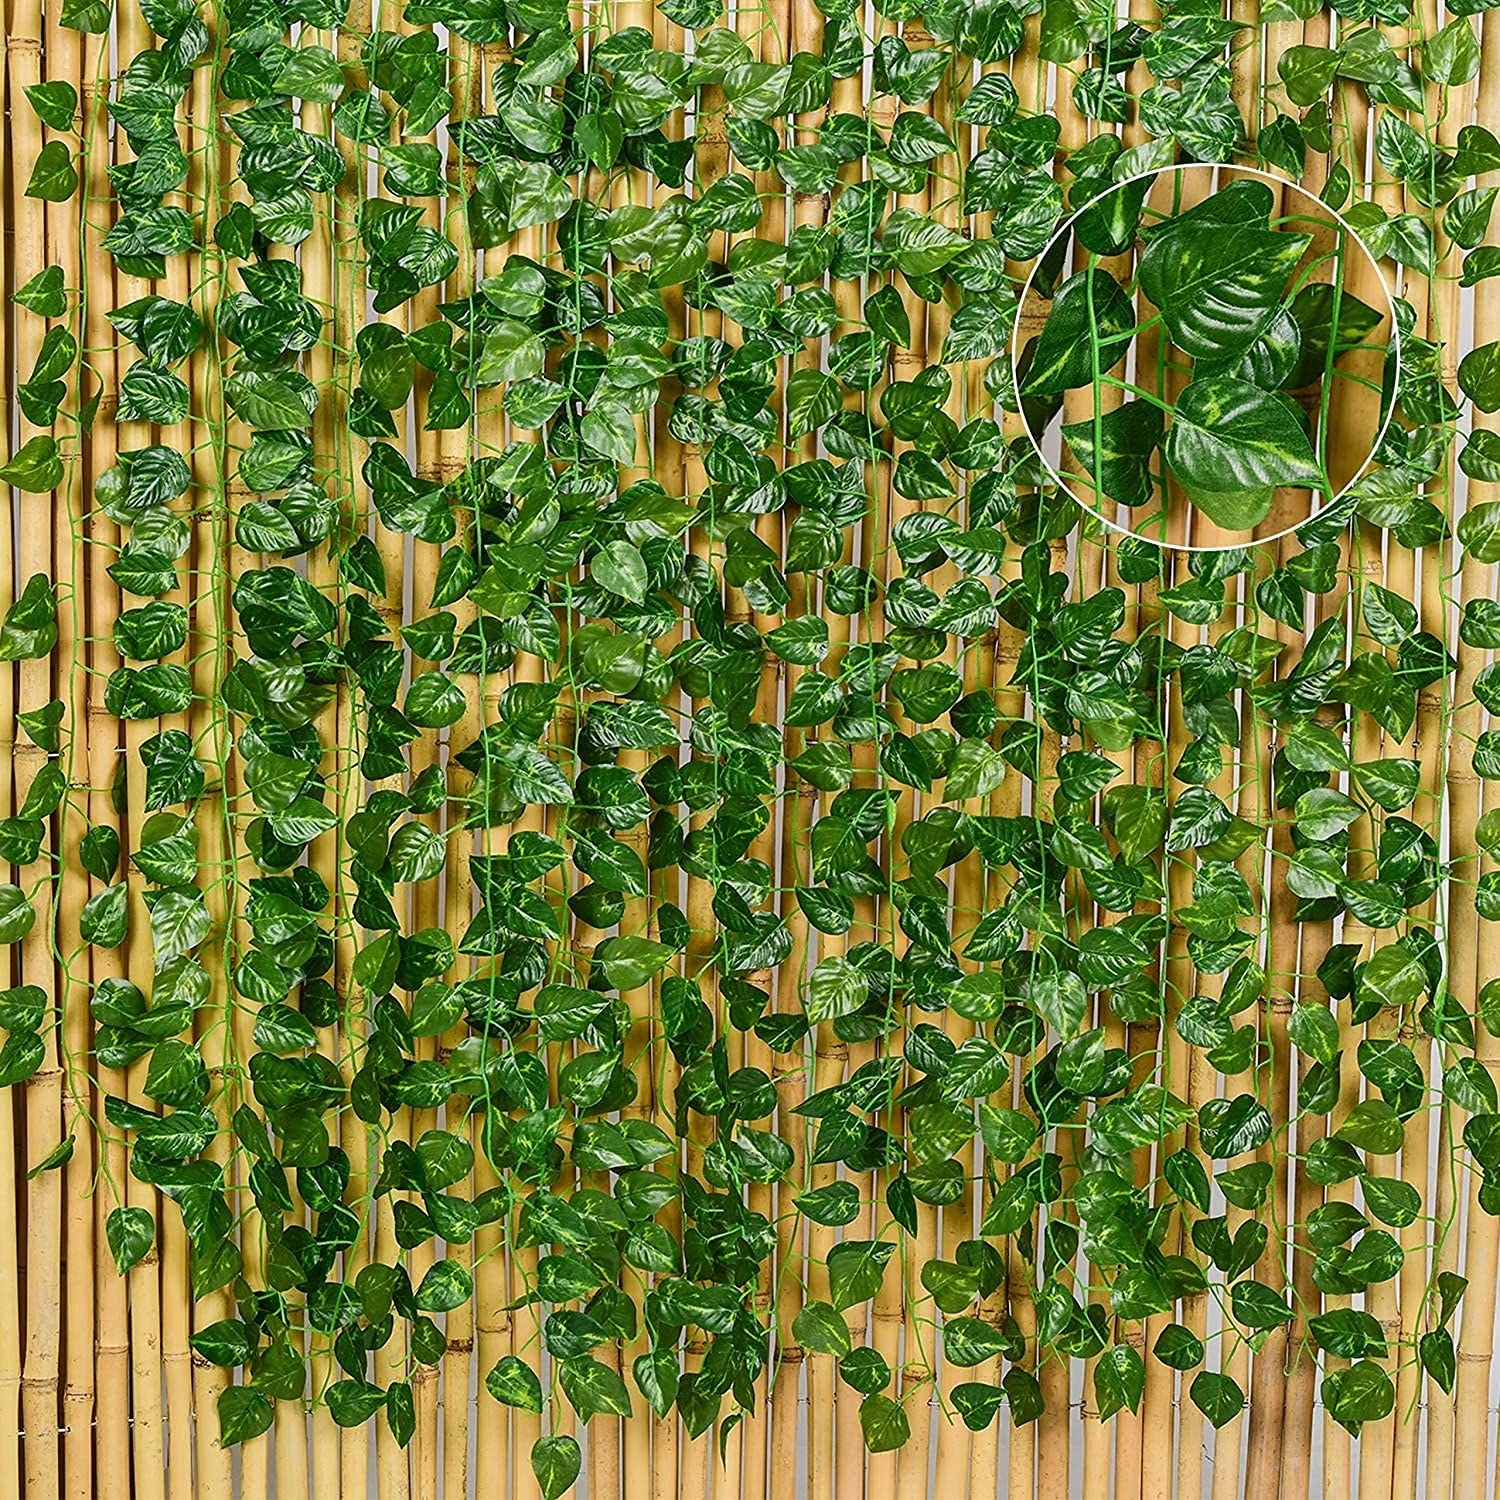 Artificial ivy against a wooden background